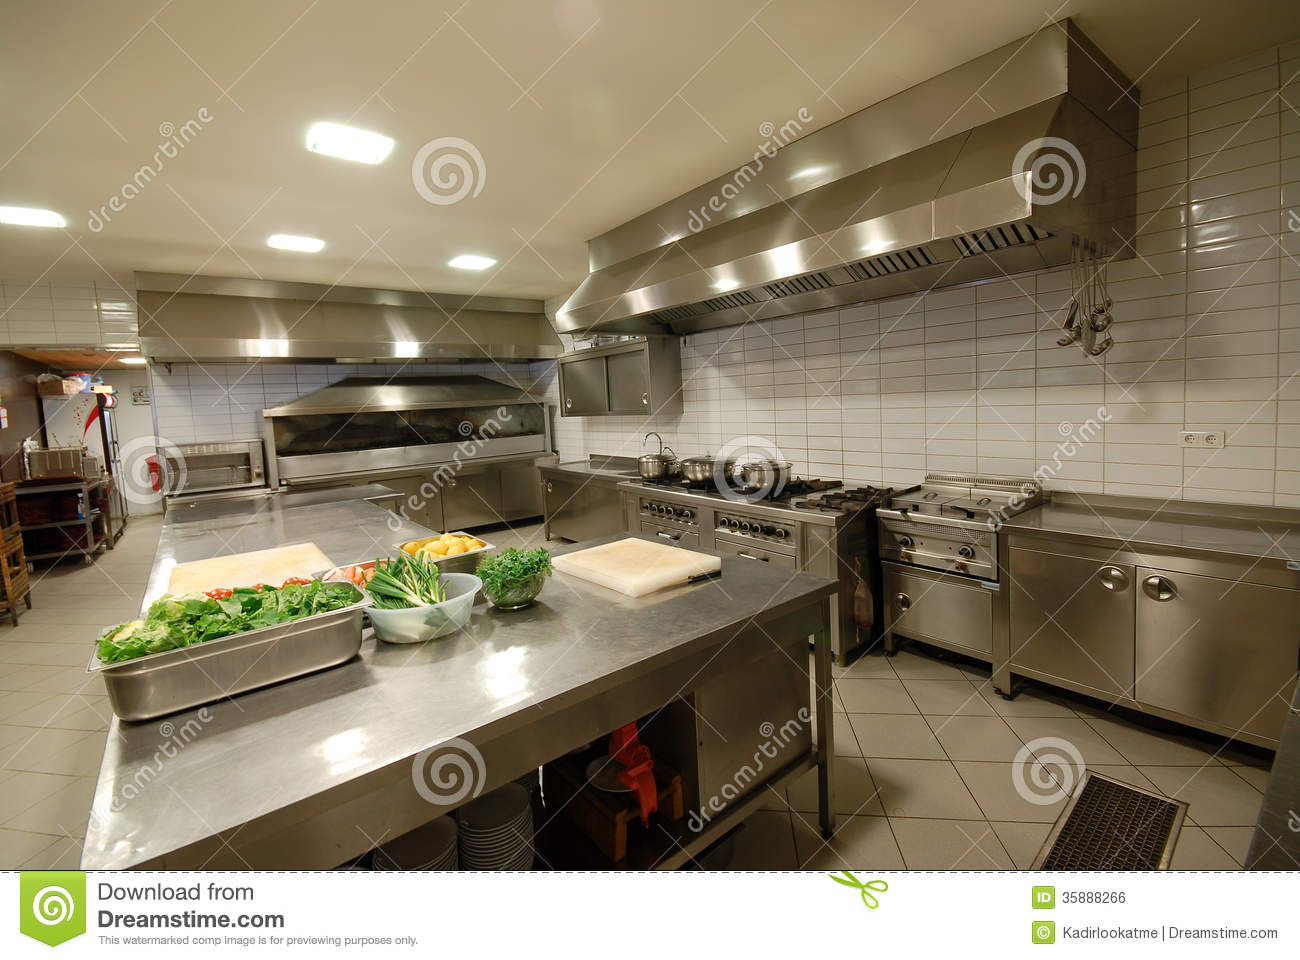 Modern Kitchen In Restaurant Royalty Free Stock Image